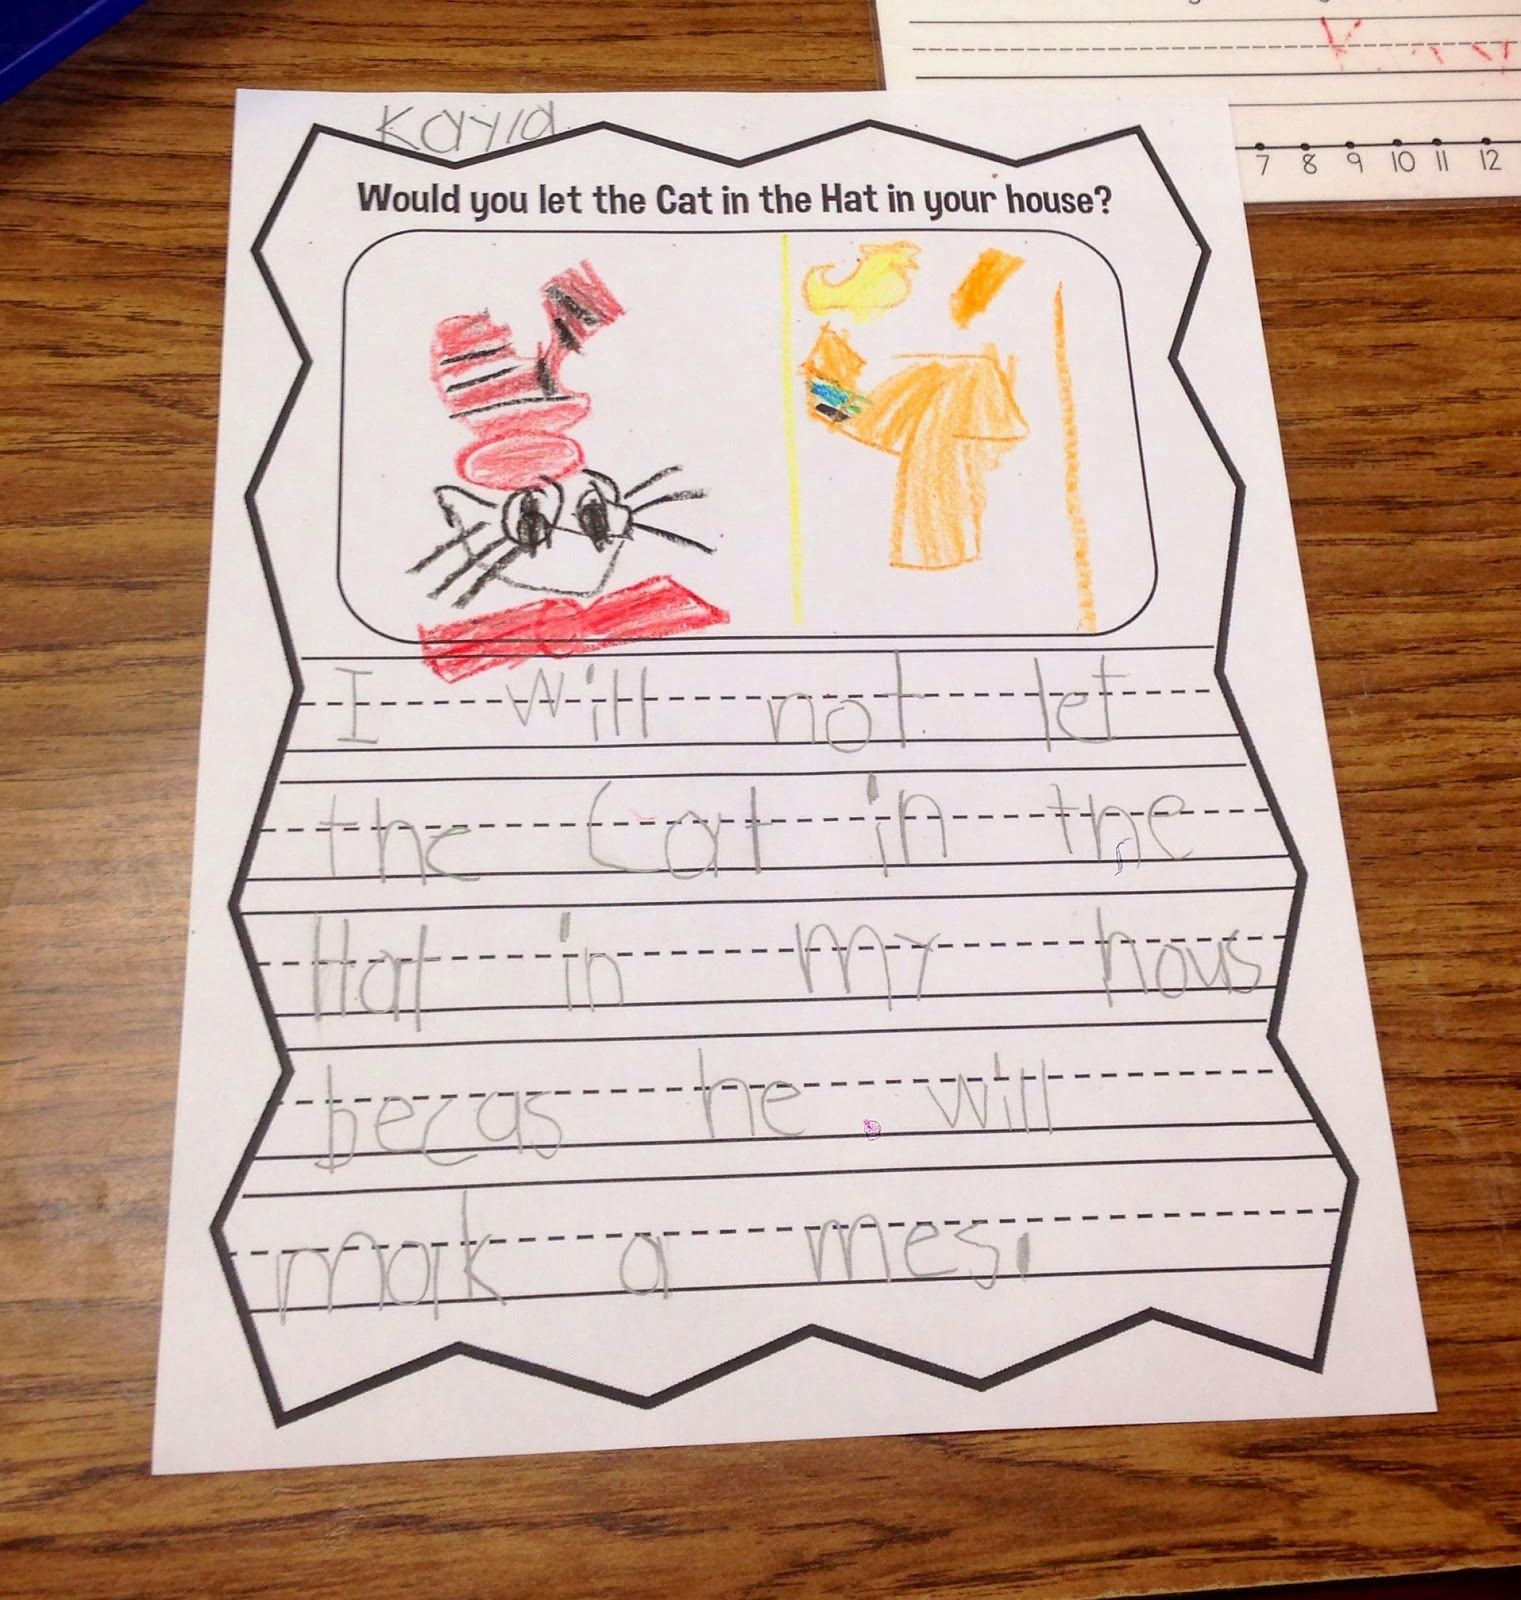 Opinion Writing Would You Let The Cat In The Hat In Your